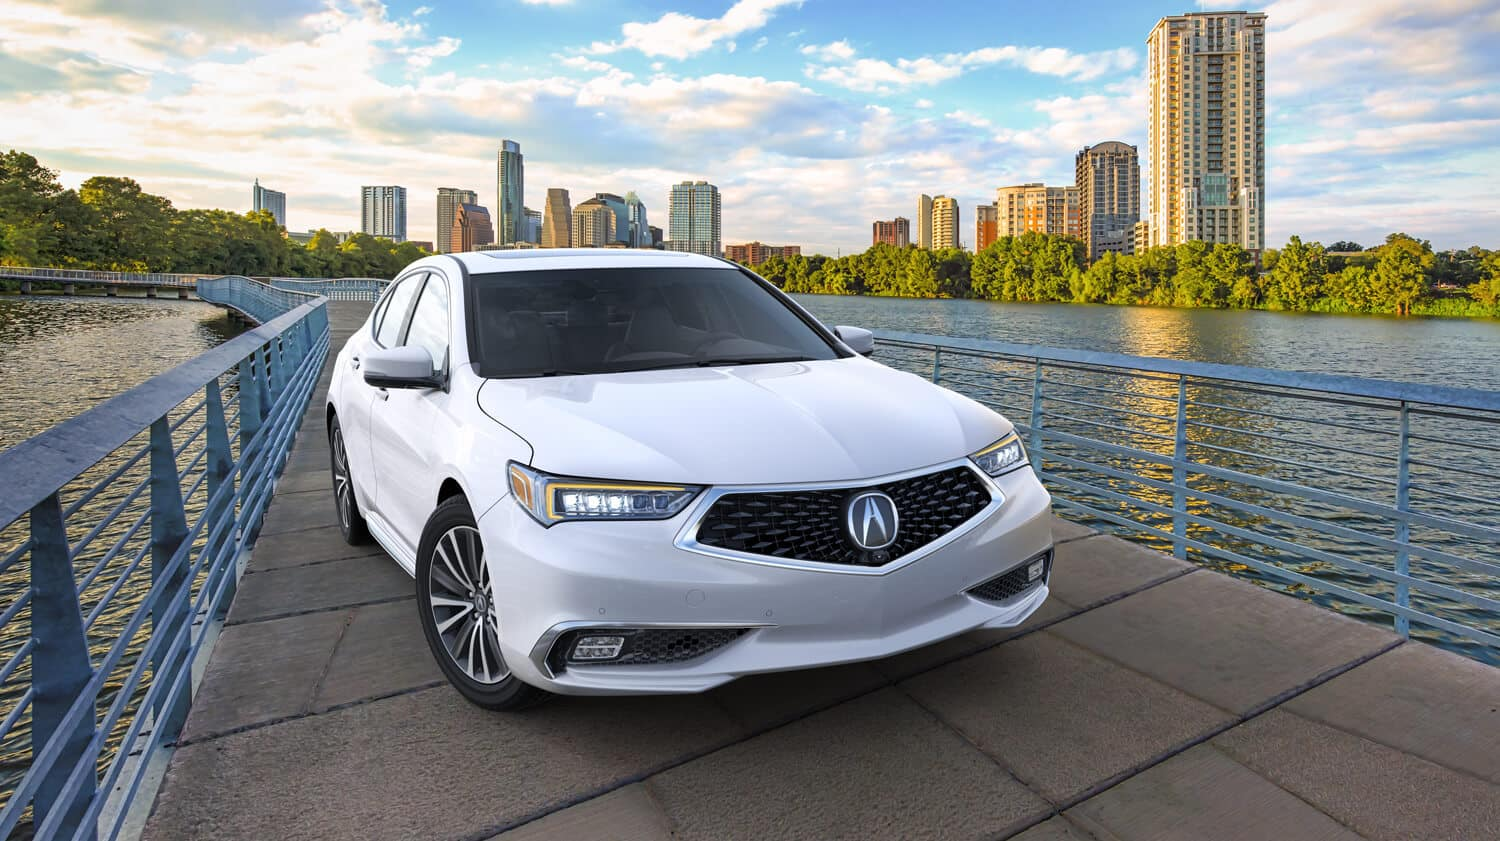 tx tlx new car acura dealership me lease dealers houston near gillman for used